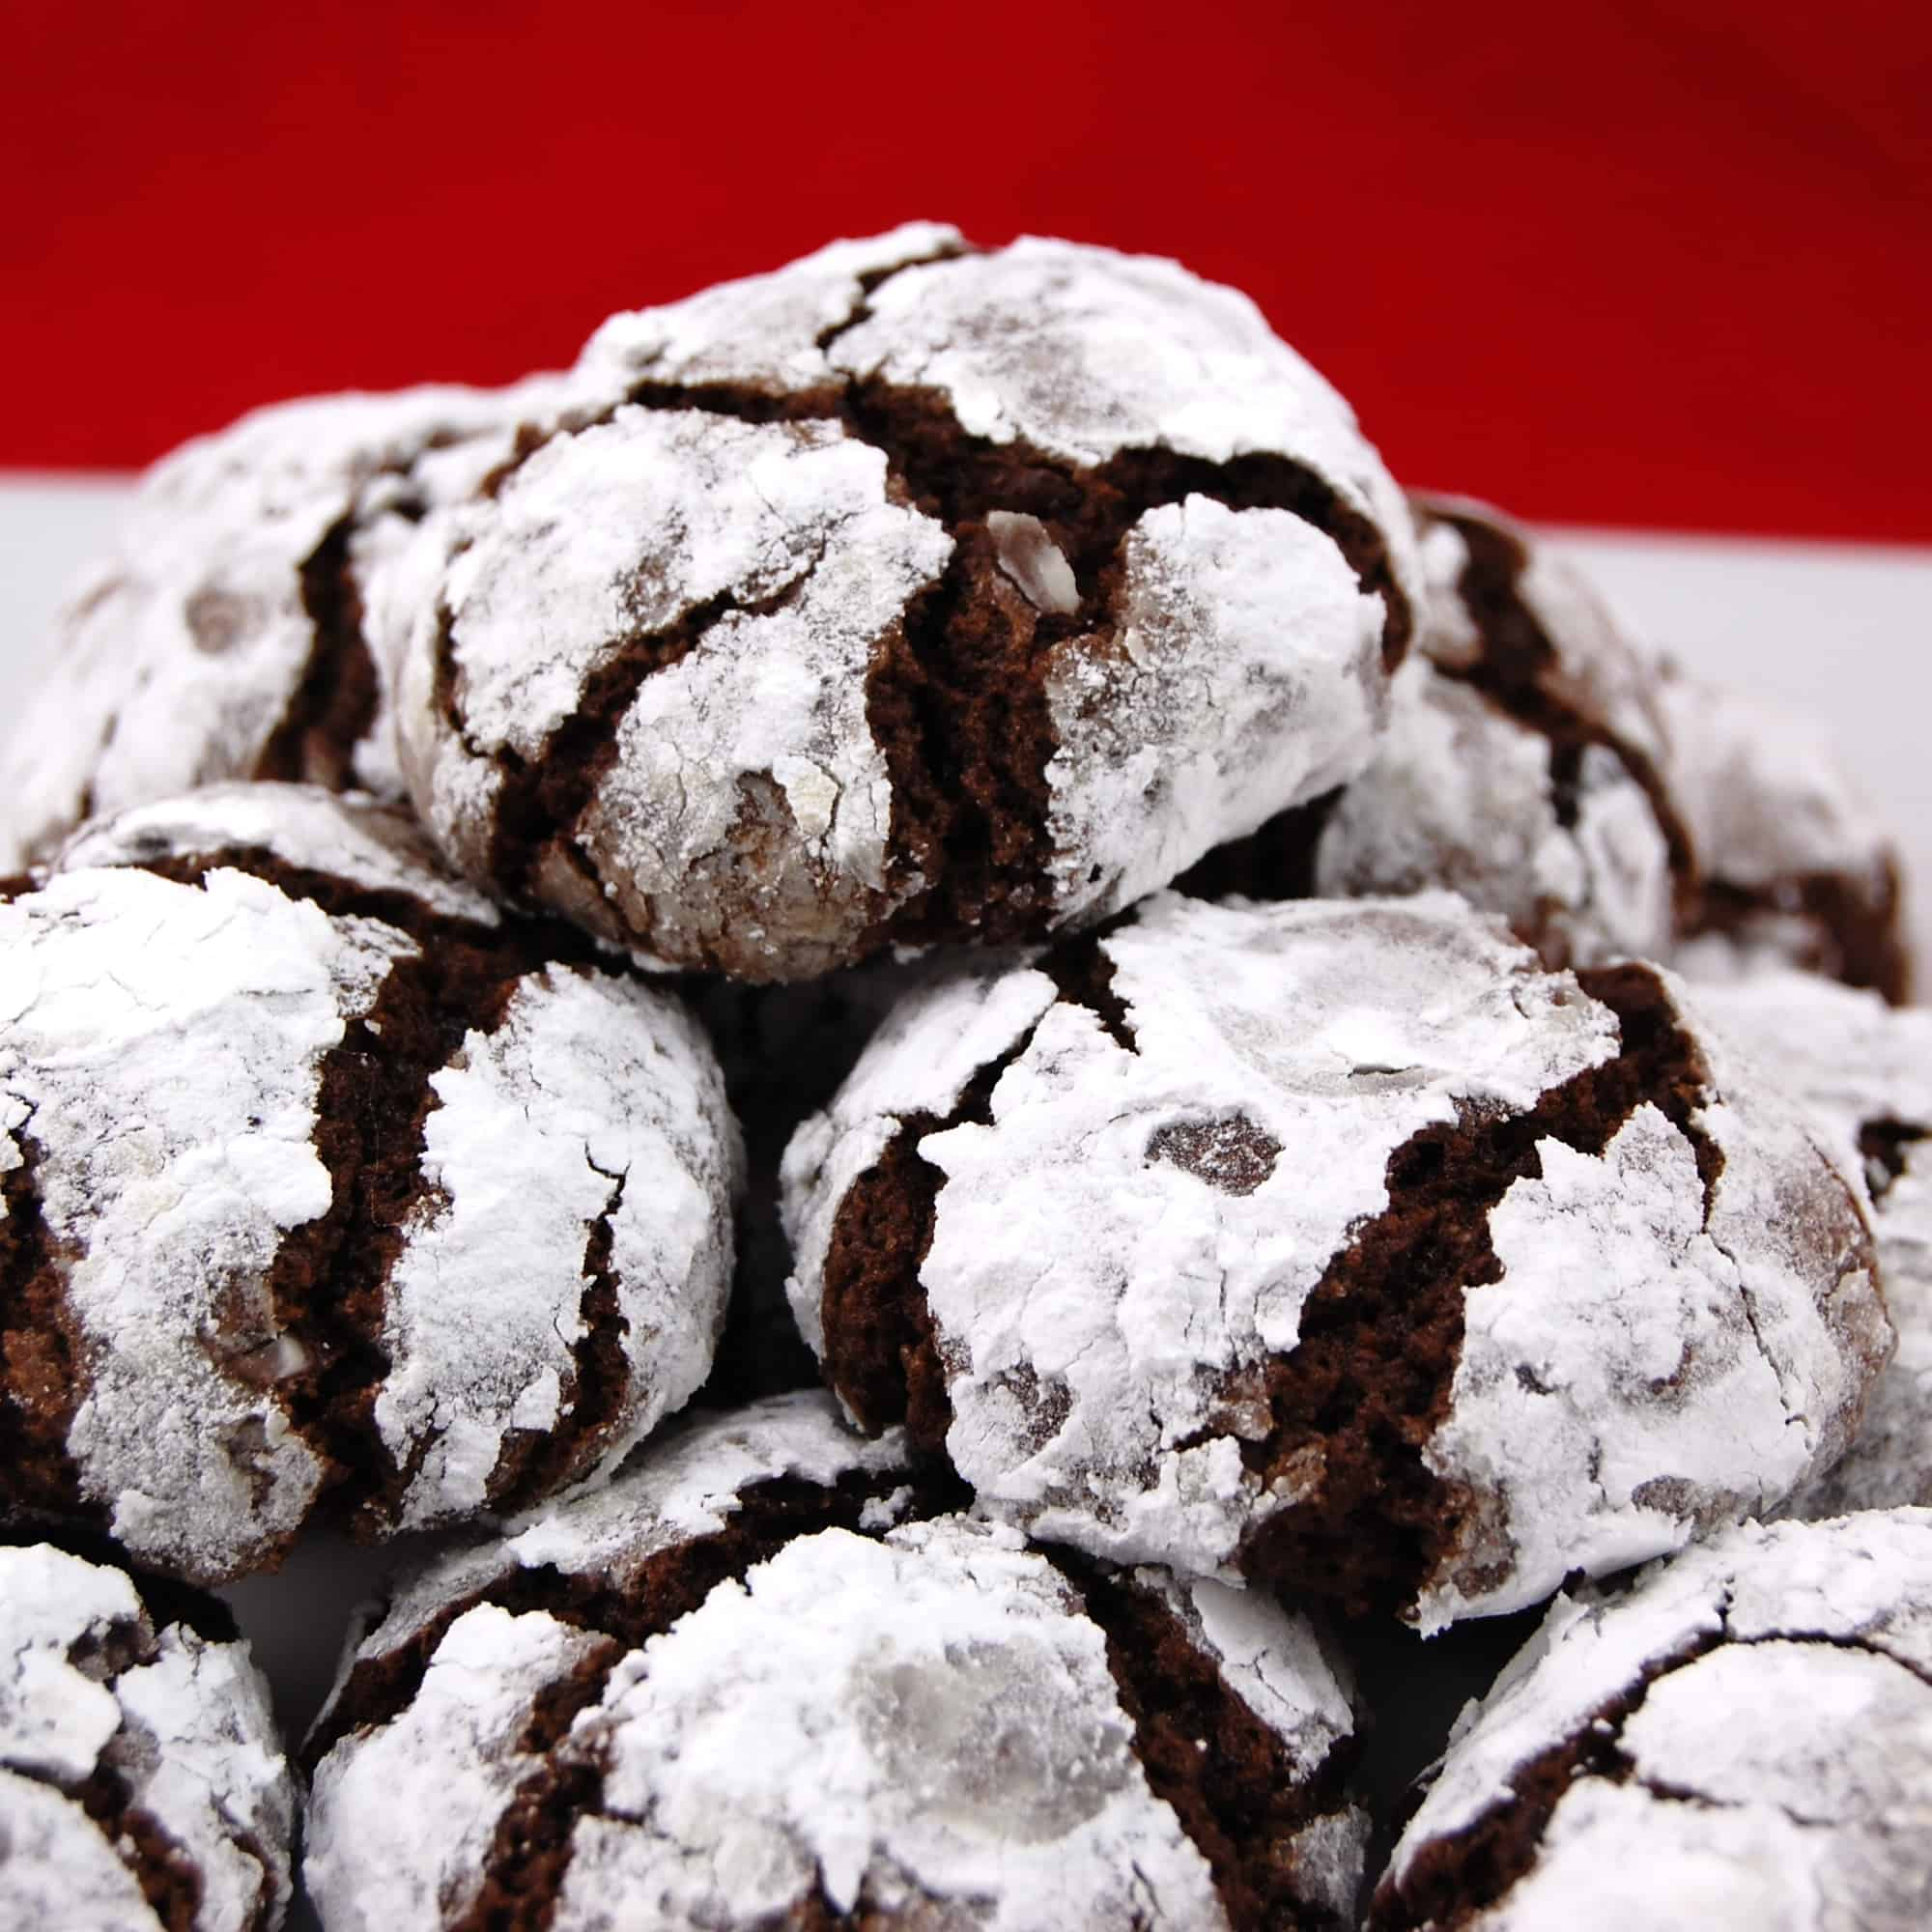 Black Forest Chocolate Crinkle Cookies with a red background